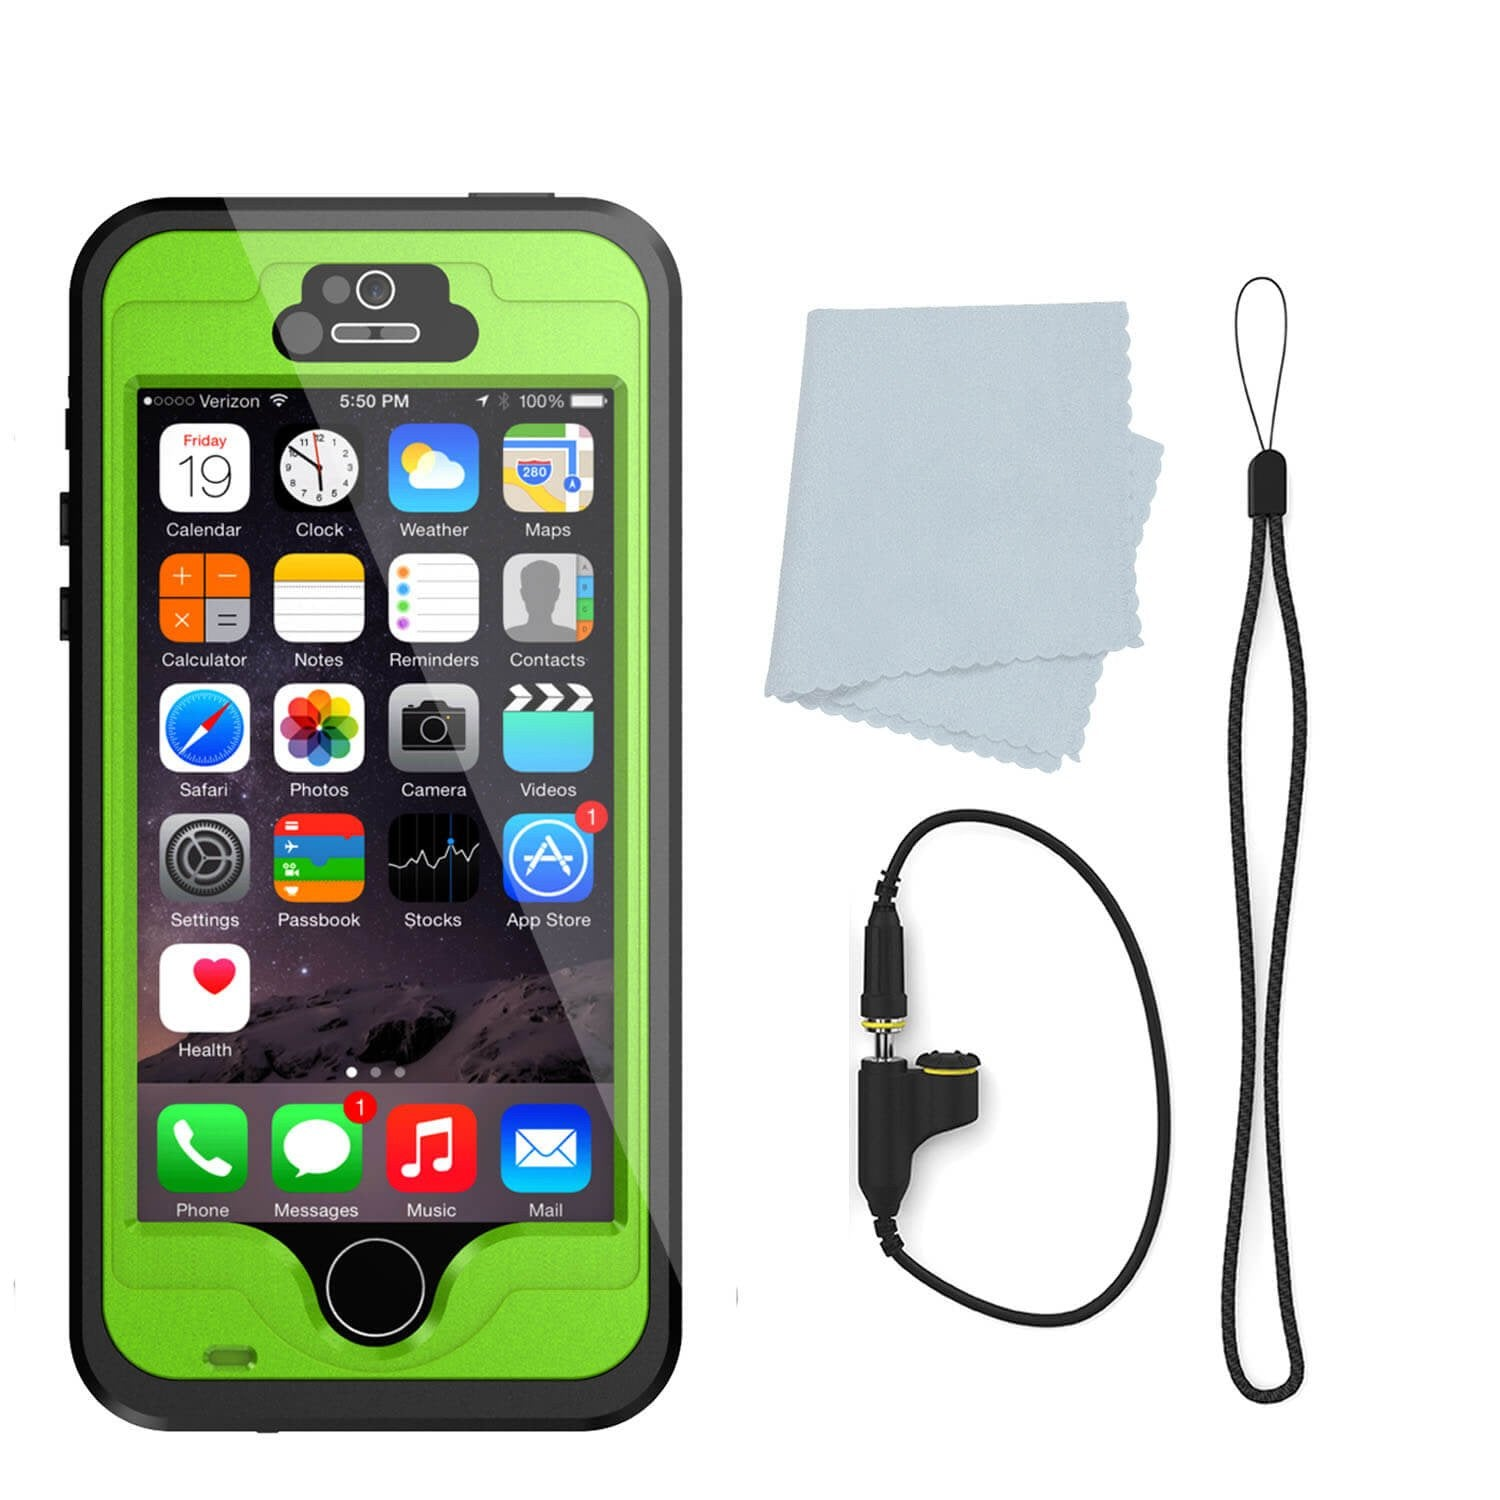 iPhone 5S/5 Waterproof Case, PunkCase StudStar Light Green Case Water/ShockProof | Lifetime Warranty - PunkCase NZ